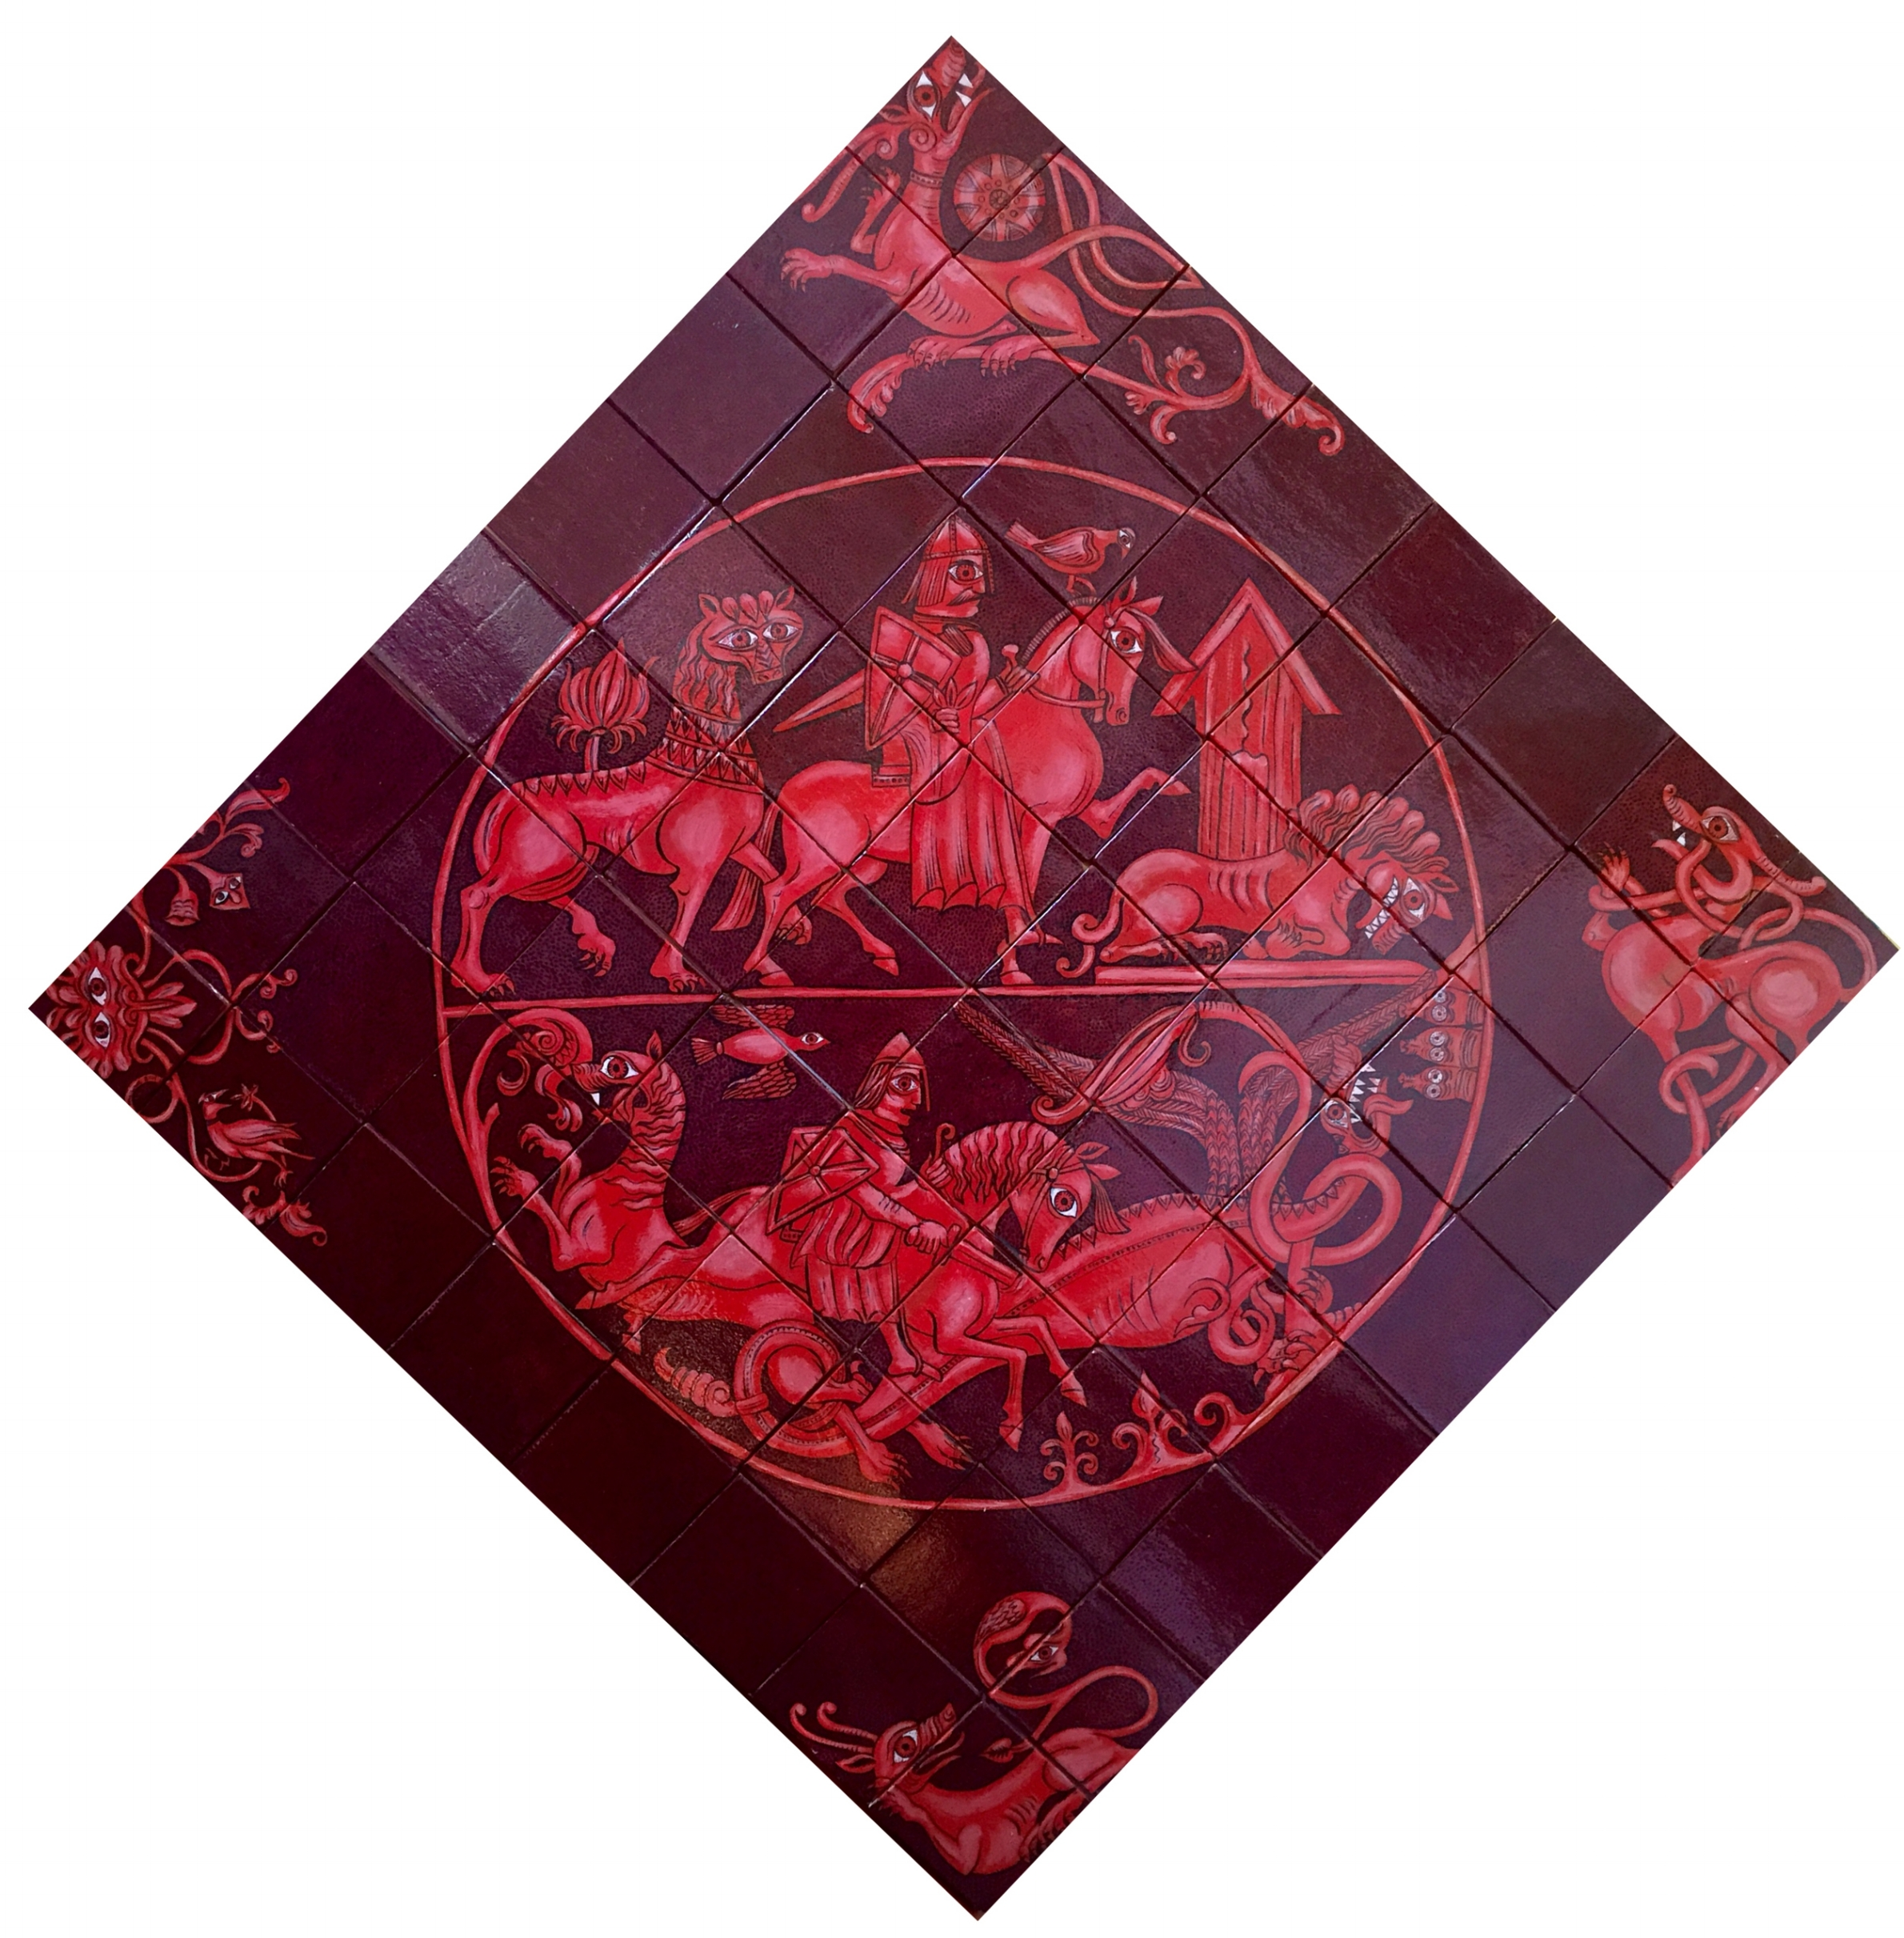 Dragon Slayer  - 47 x 47 in, 120 x 120 cm